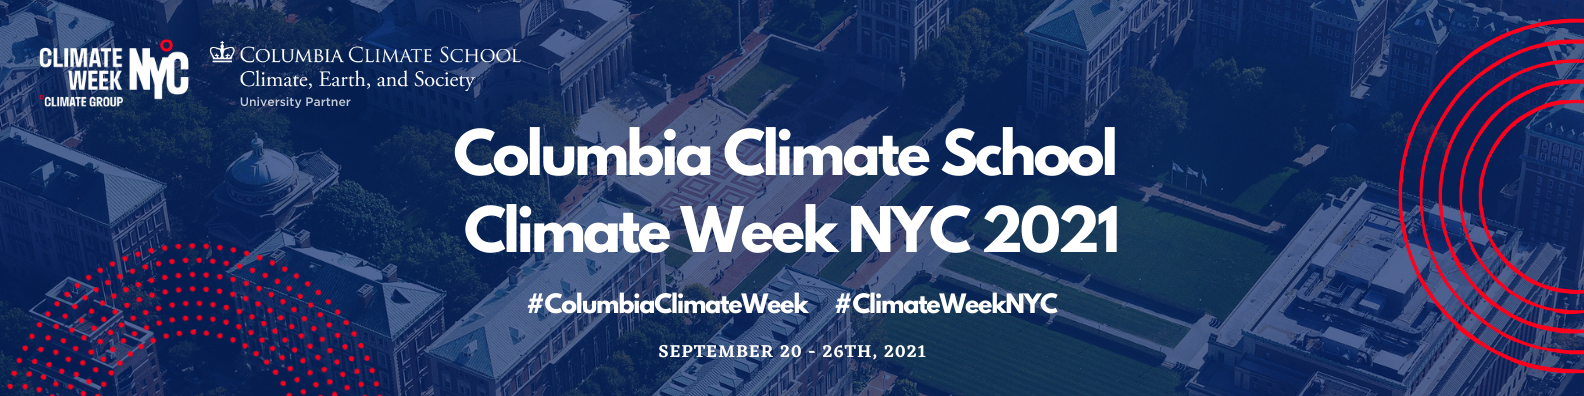 Columbia Climate School Climate Week 2021